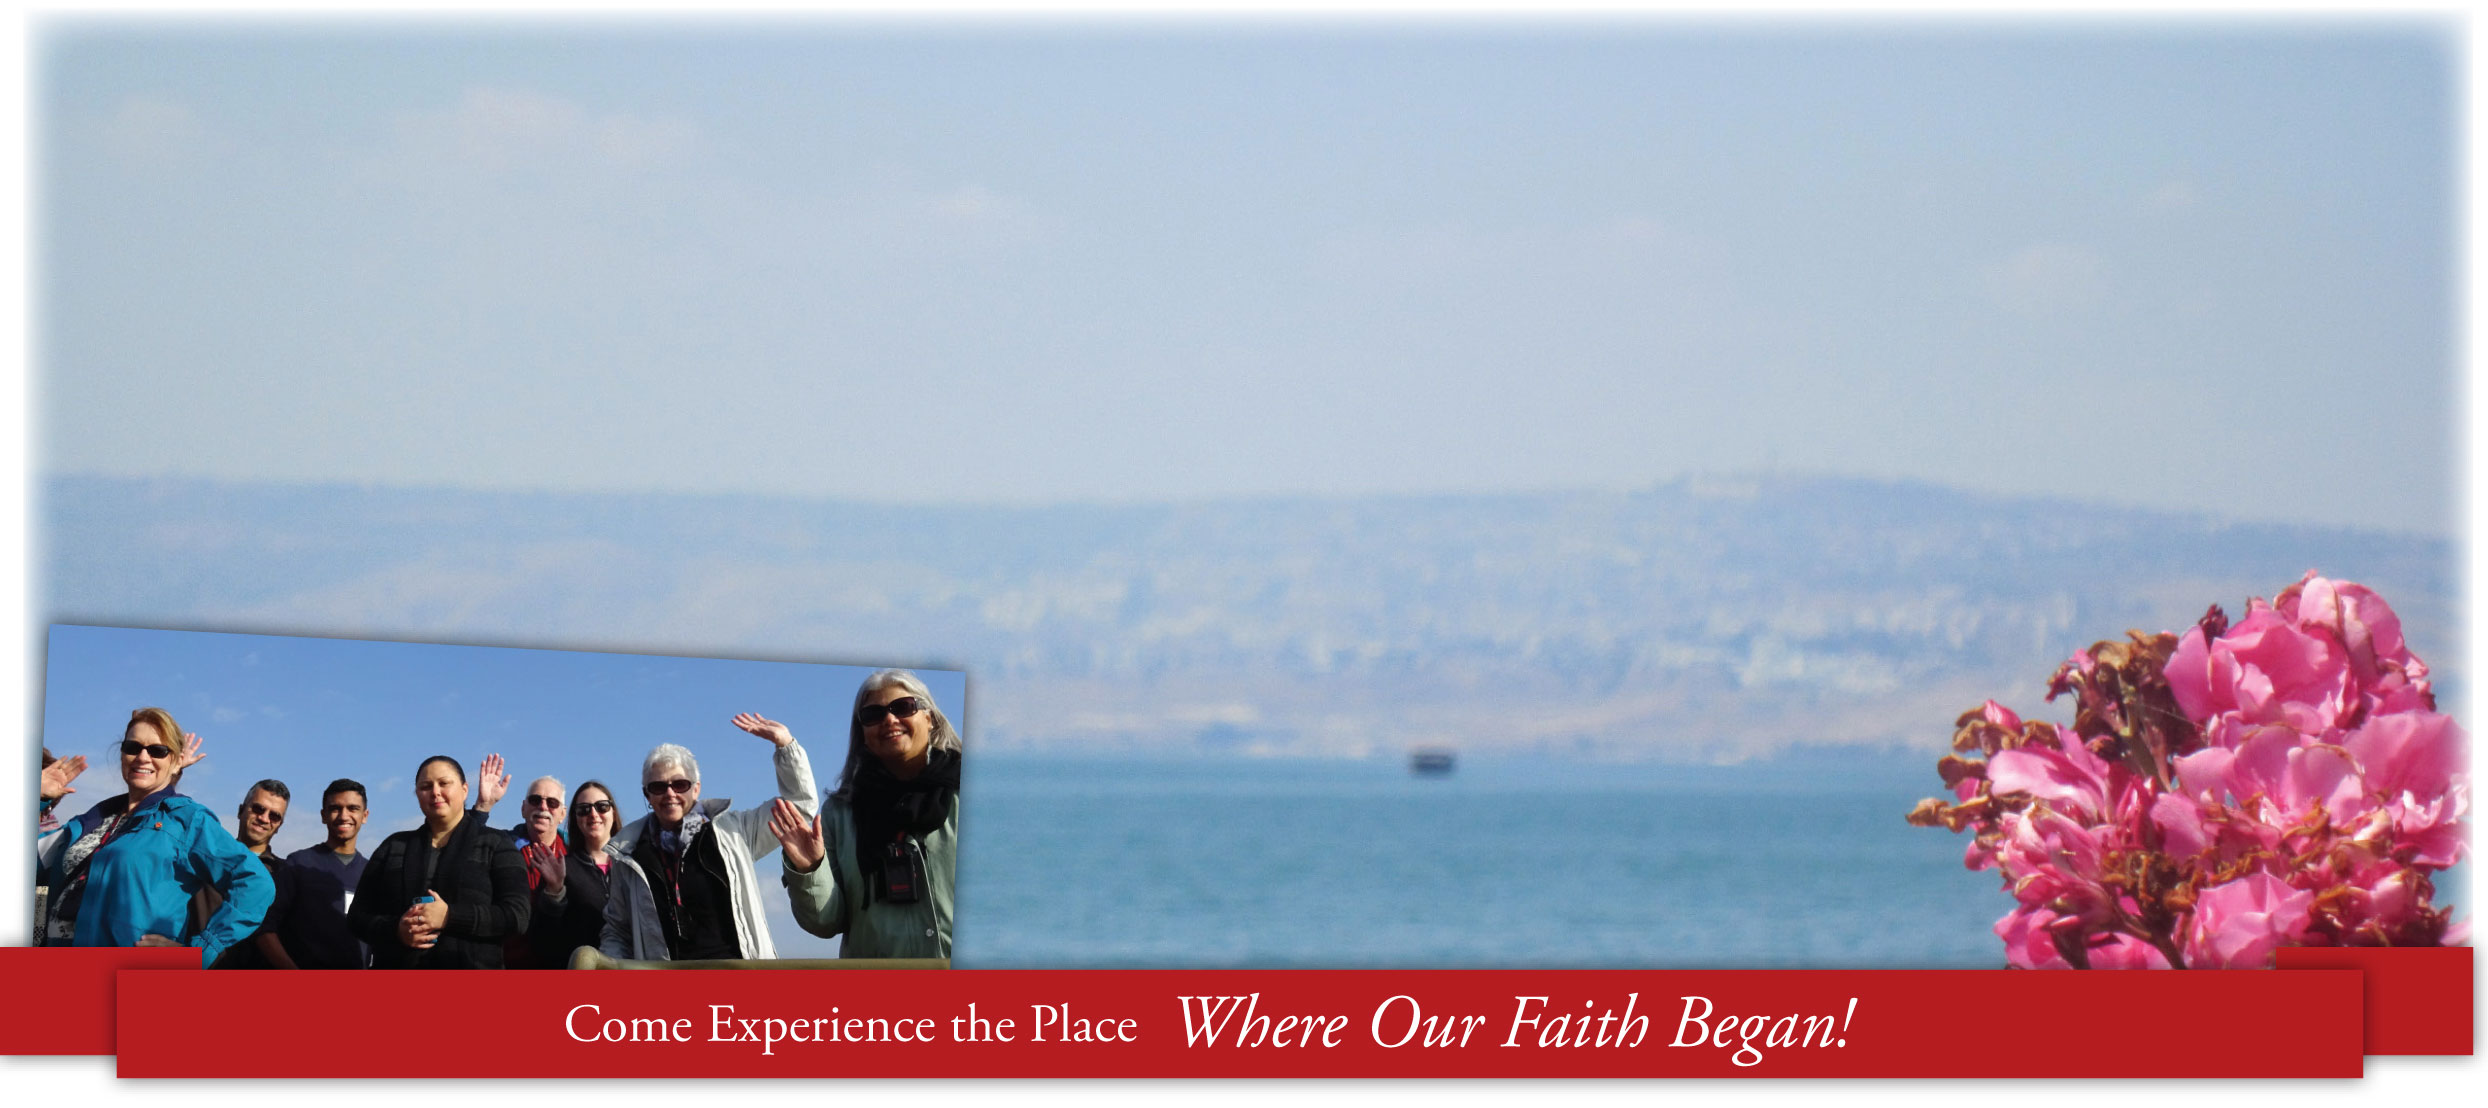 Come experience the place where our faith began! A beautiful image of the Sea of Galilee and pilgrims waving